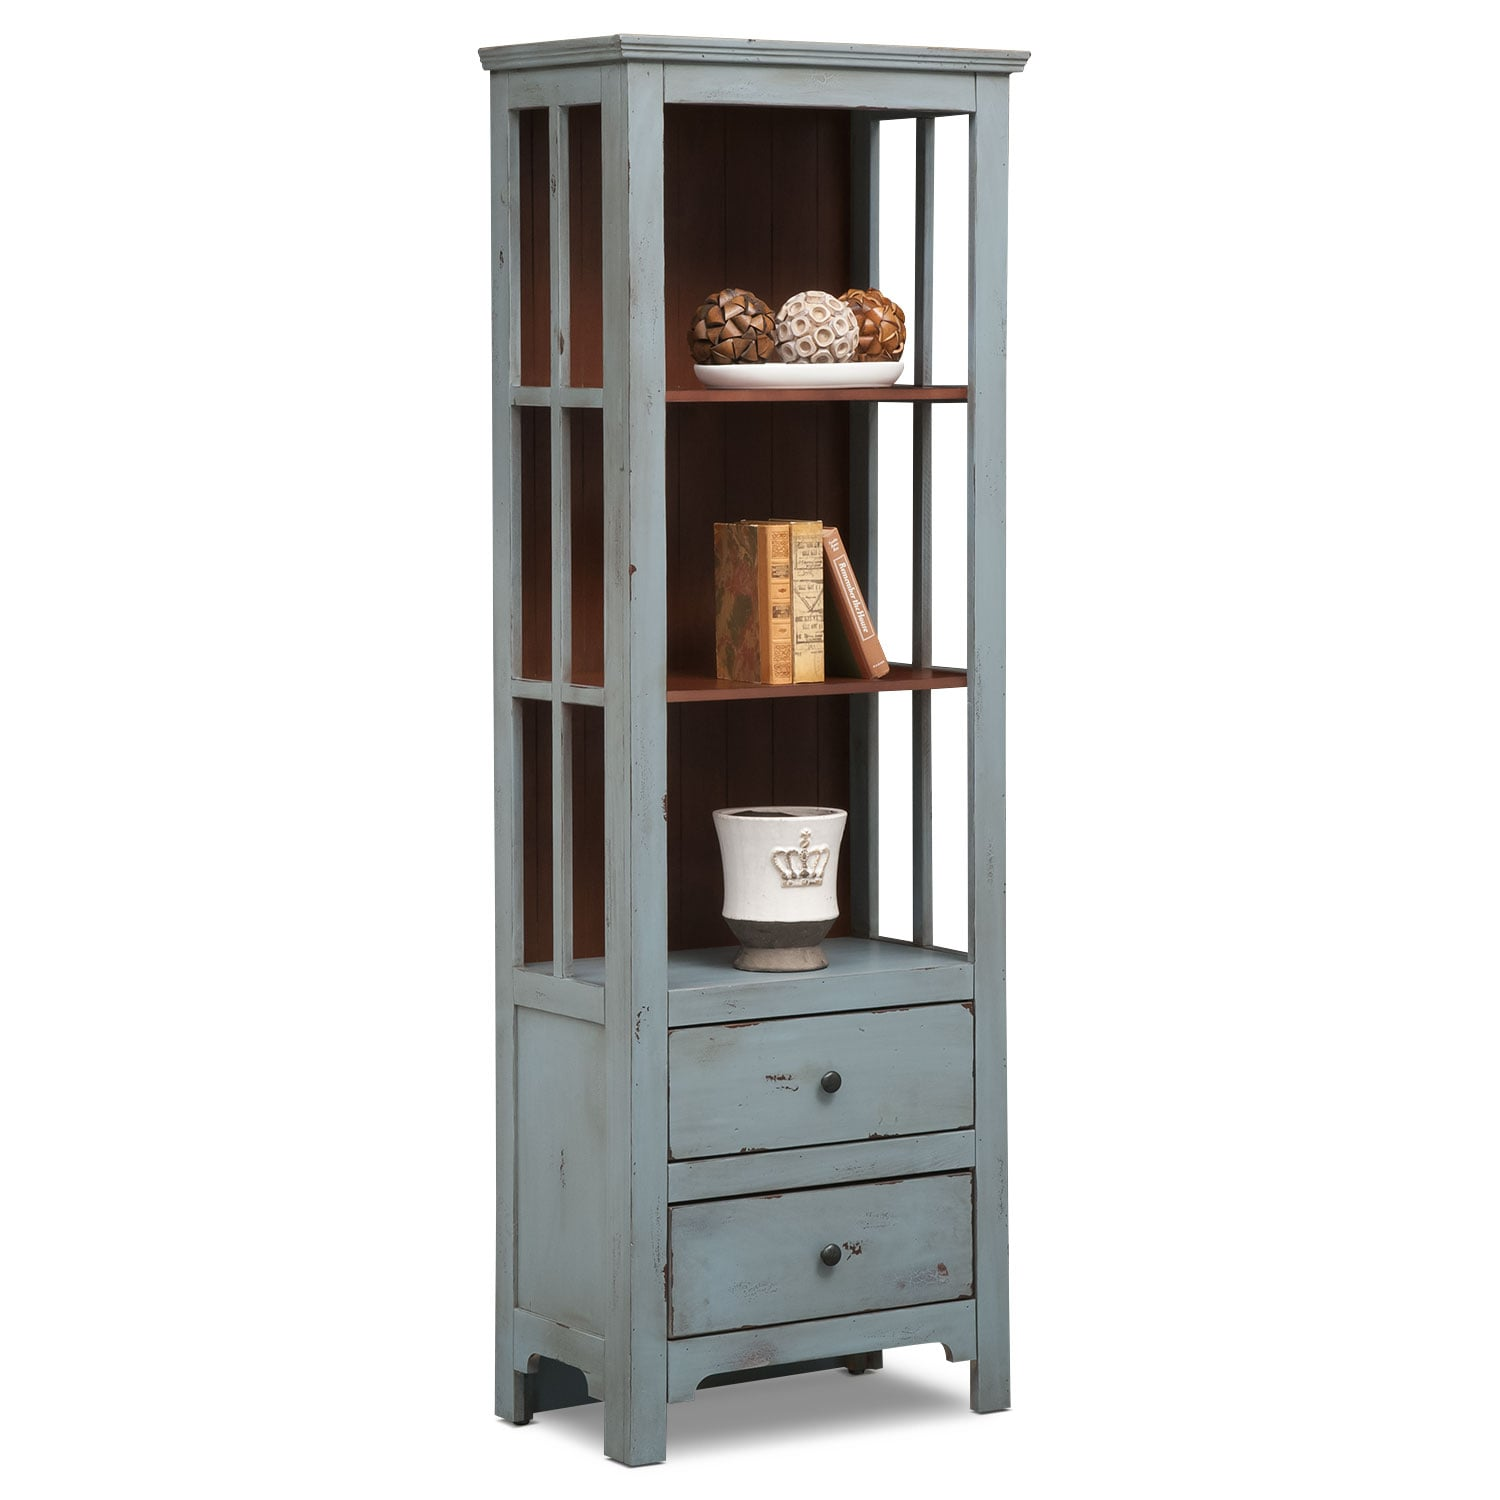 Keefe Bookcase - Blue